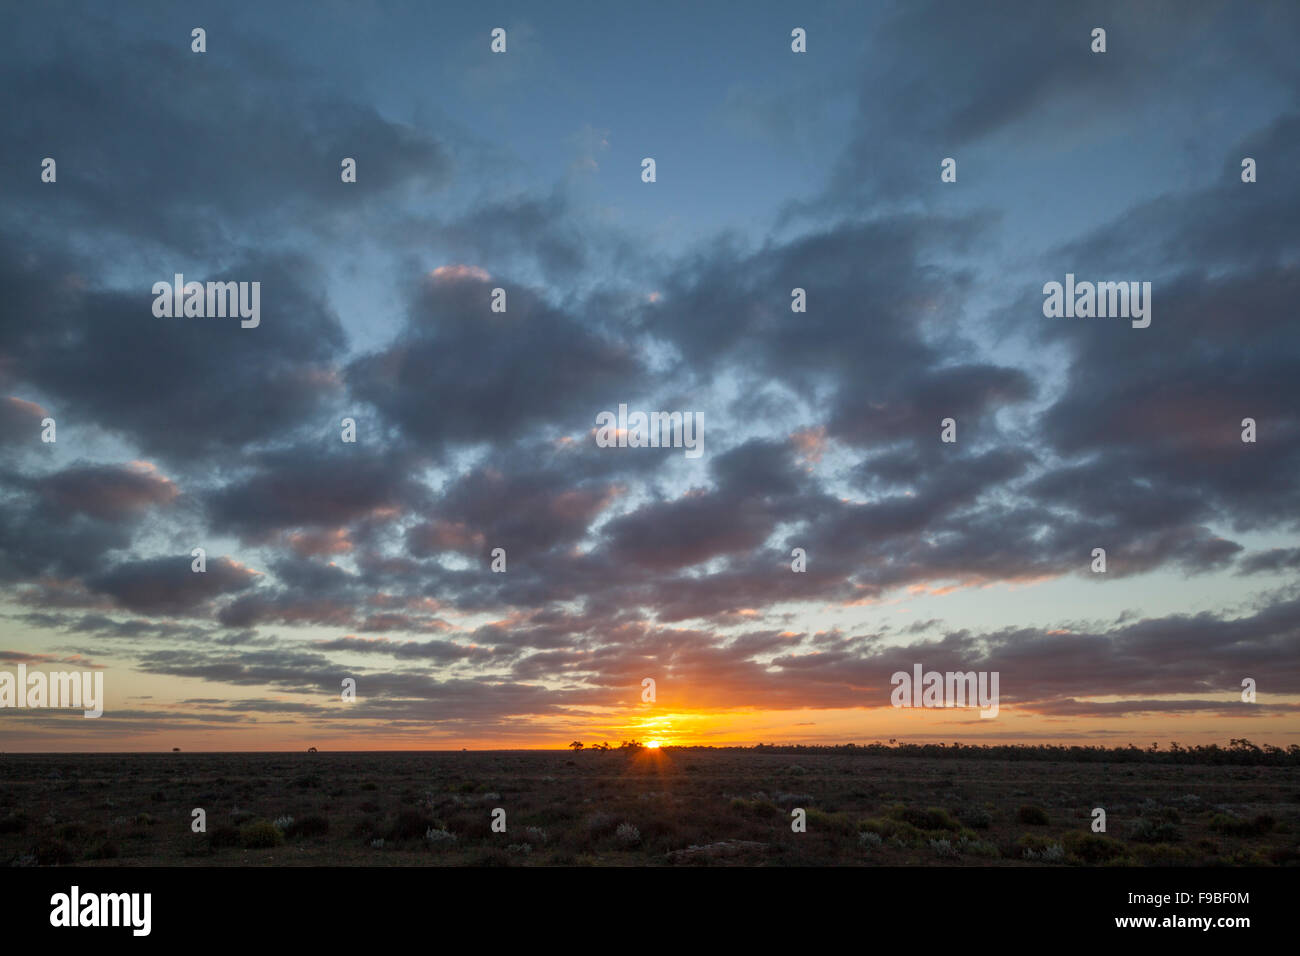 sunset at Wilandra Station, Wilandra National Park, Far West New South Wales, Australia - Stock Image